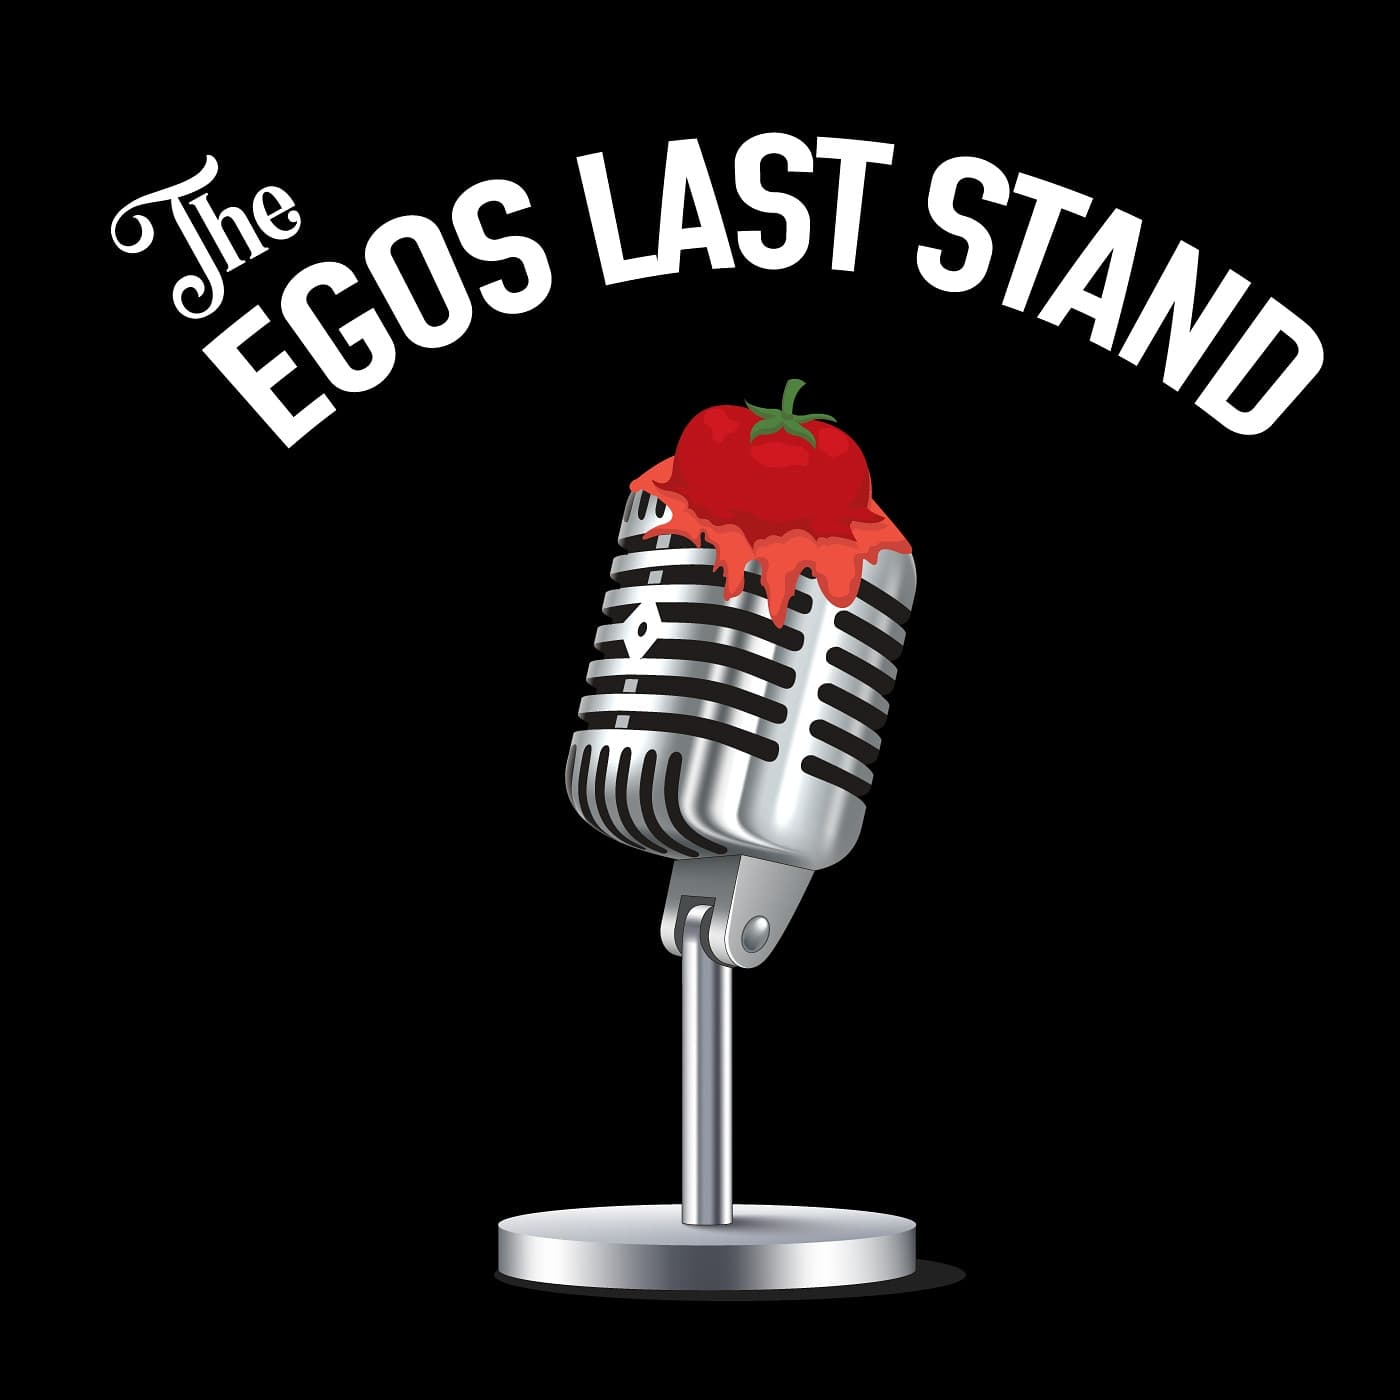 The Egos Last Stand